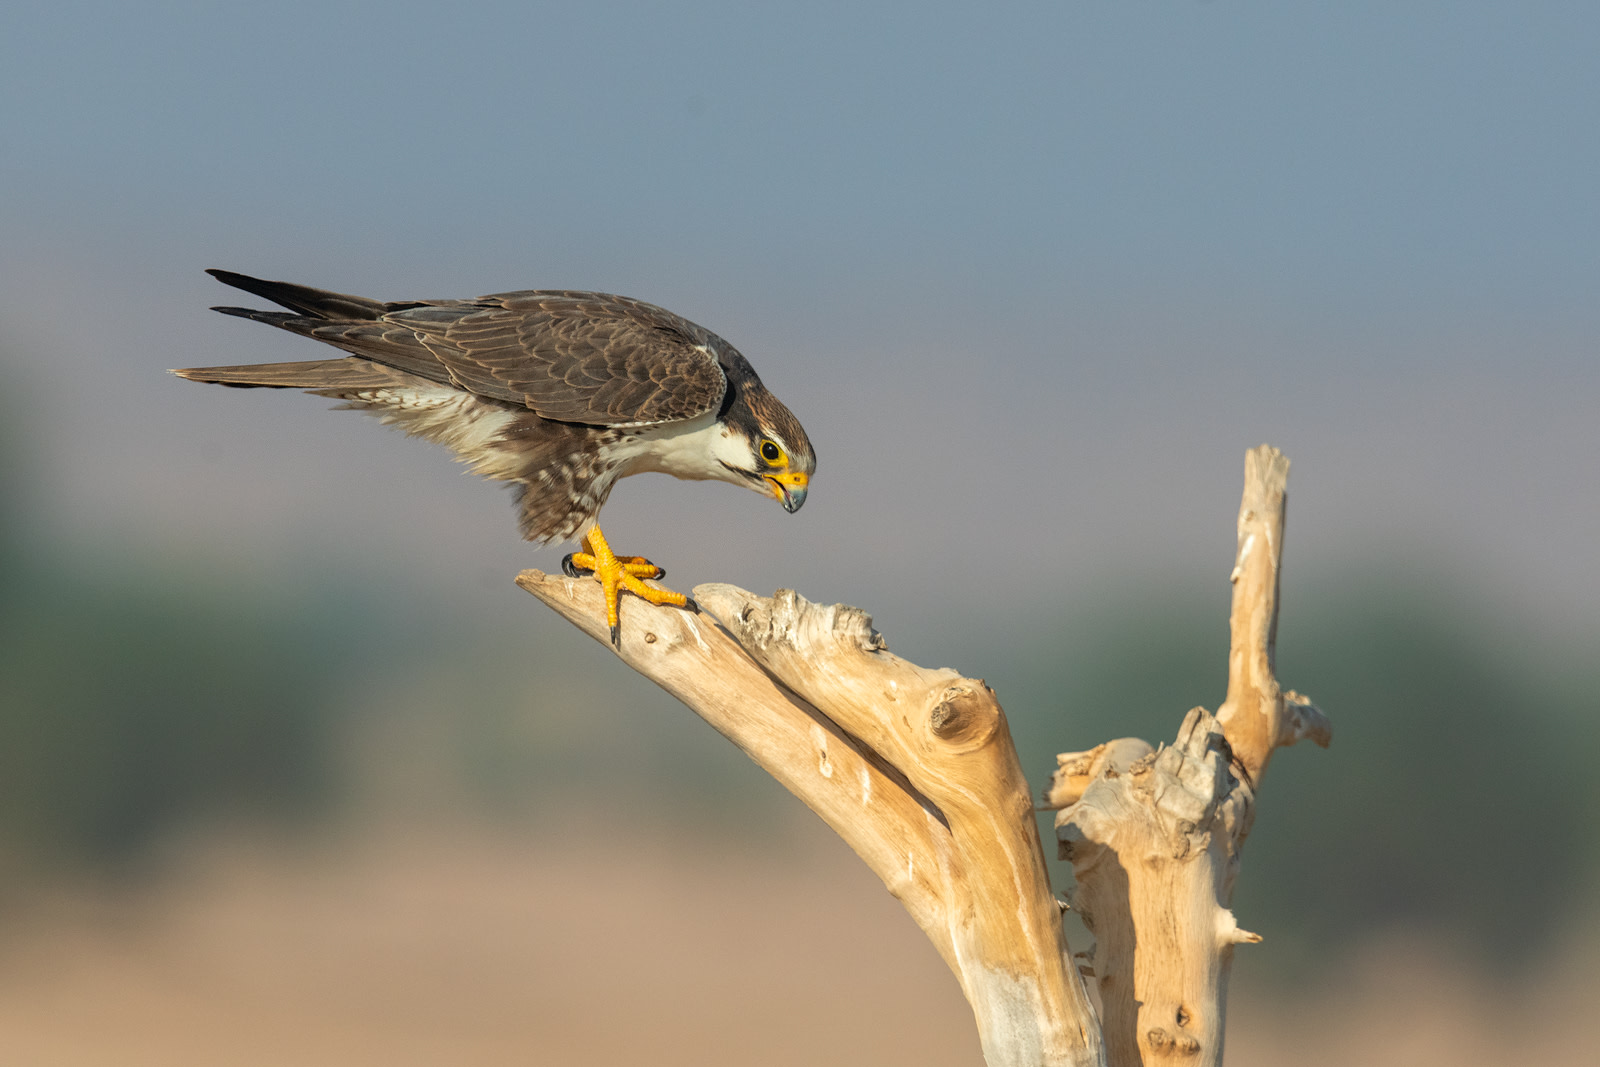 """Laggar falcons (Falco jugger) are considered residents of Desert National Park as they breed here. These small-sized raptors nest in trees in the sanctuary, especially on the outskirts of villages. Laggar falcons are dedicated parents, and both male and females incubate the eggs, hunt for food, and train the young. """"Most raptors pair for life,"""" says Dr Rahmani, """"but unless we do long-term studies on marked birds, it is not easy to say laggars pair for life"""". Photo: Soumabrata Moulick"""